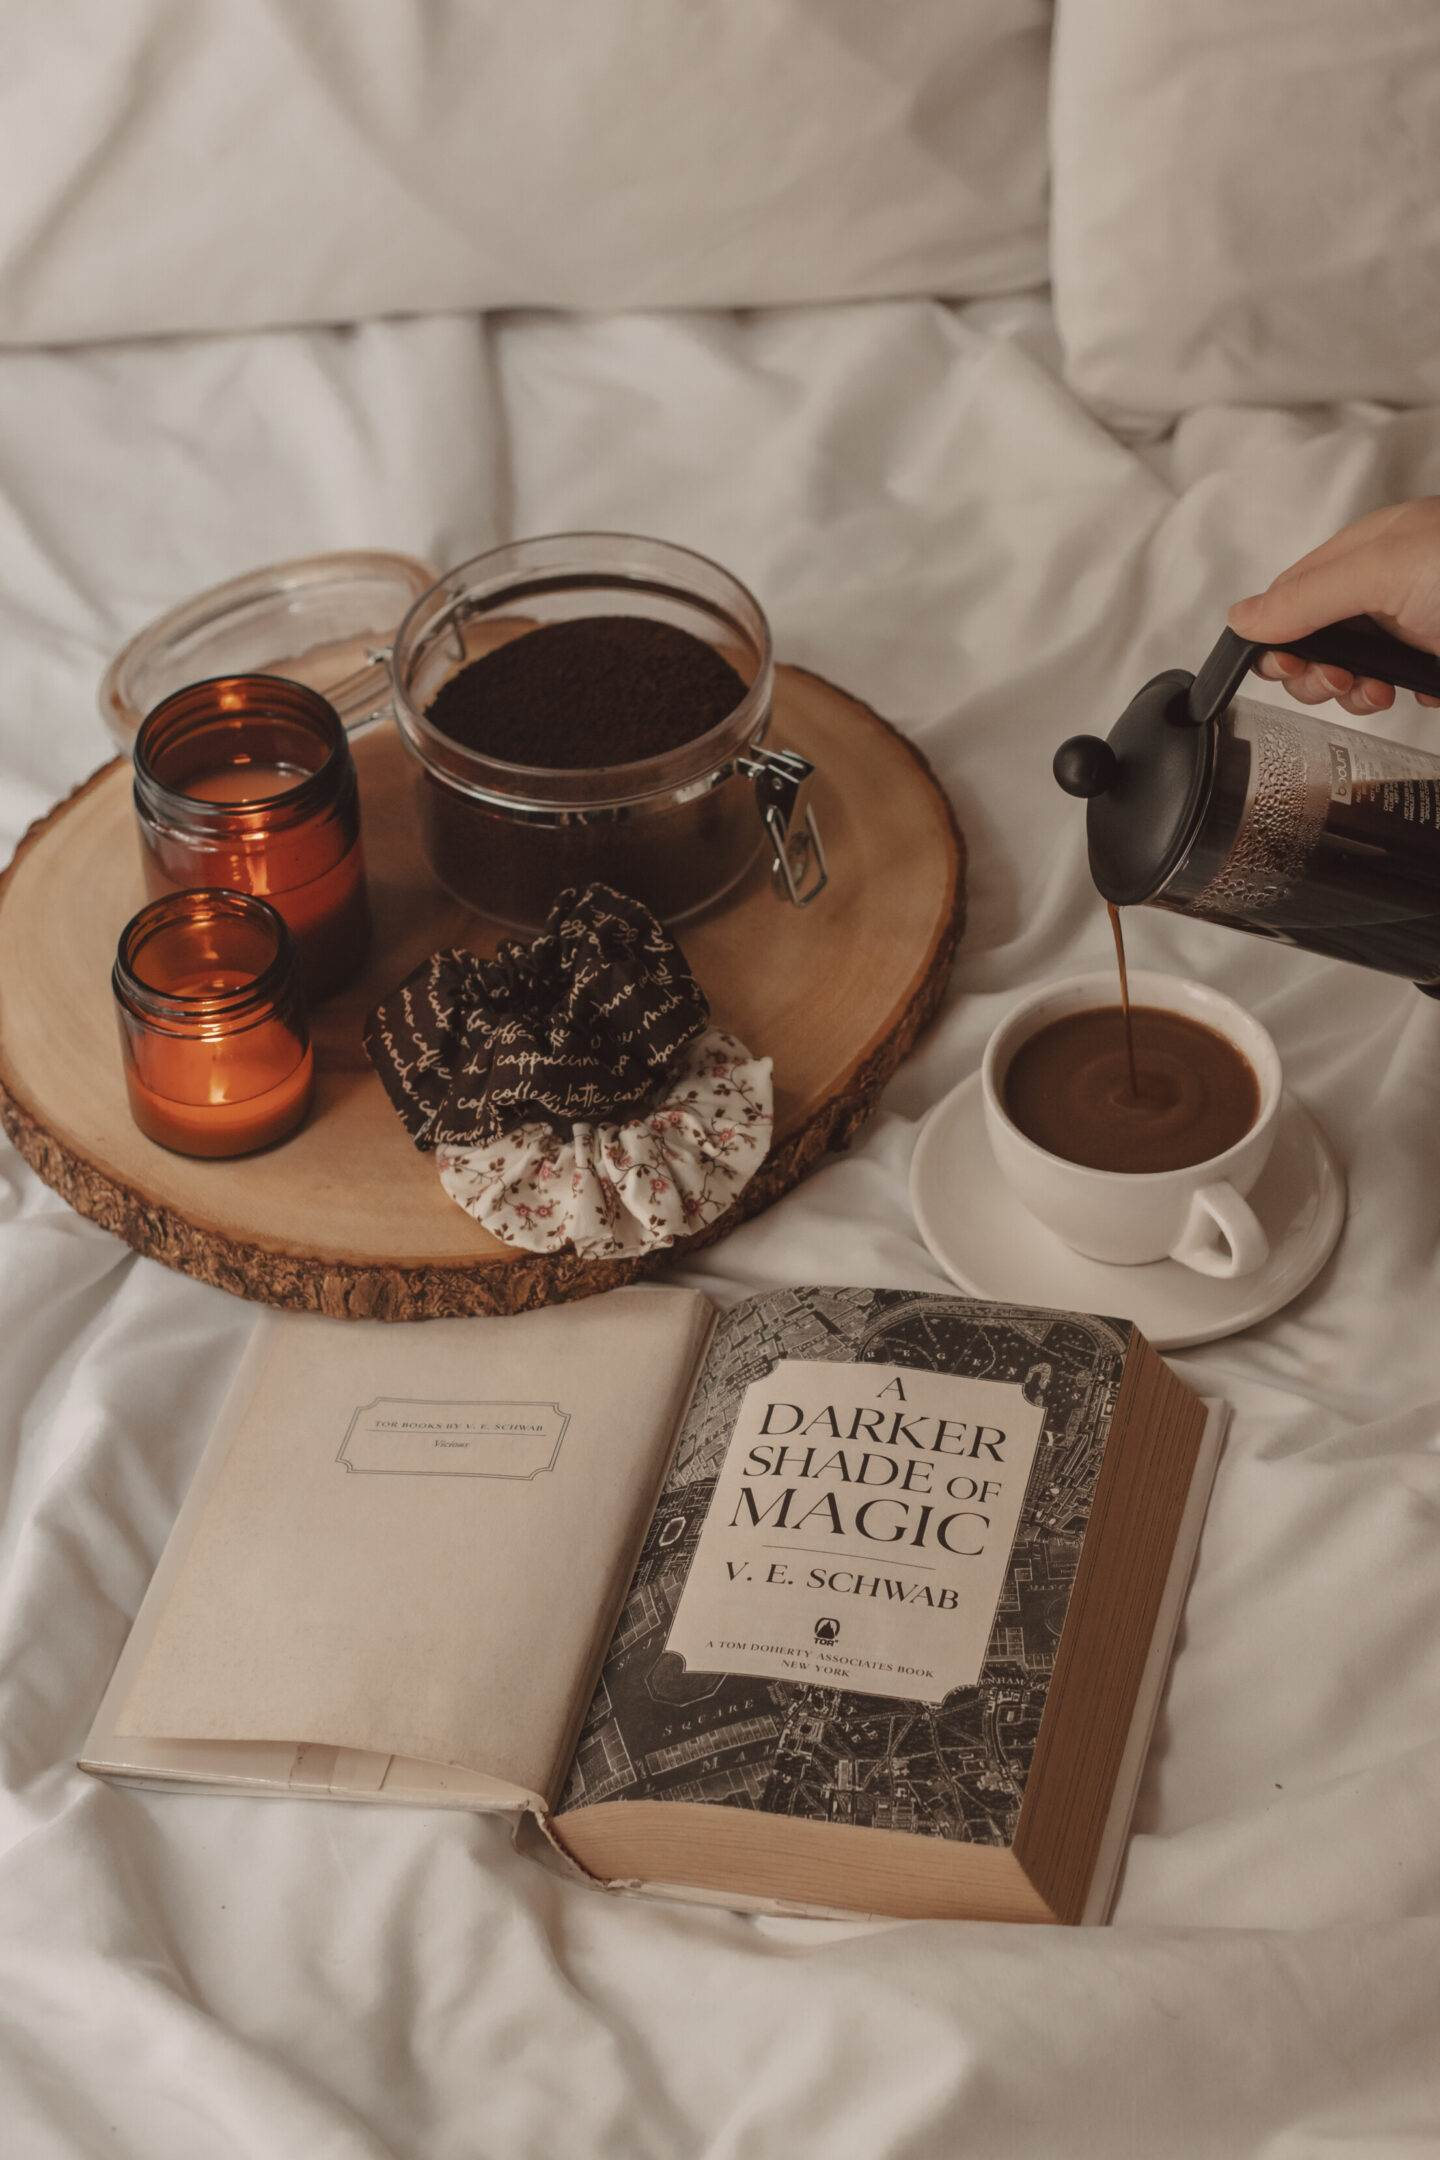 a darker shade of magic cover page opened next to a hand pouring coffee into a mug. a container of coffee grinds lays open next to two lit candles and hair ties.